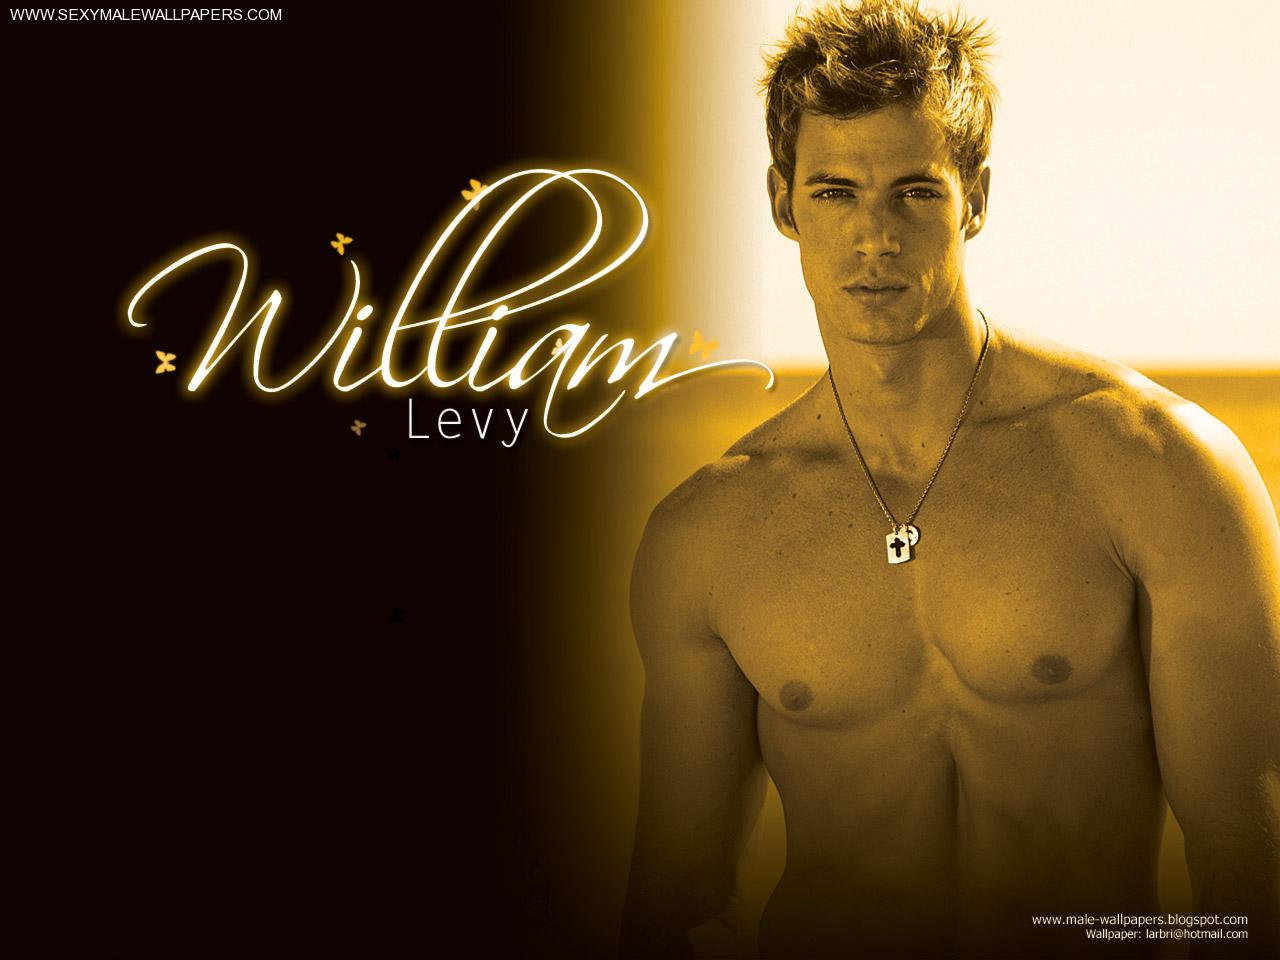 http://desk-wallpapers.ucoz.com/waluri/Men/William-Levy-03-1.jpeg